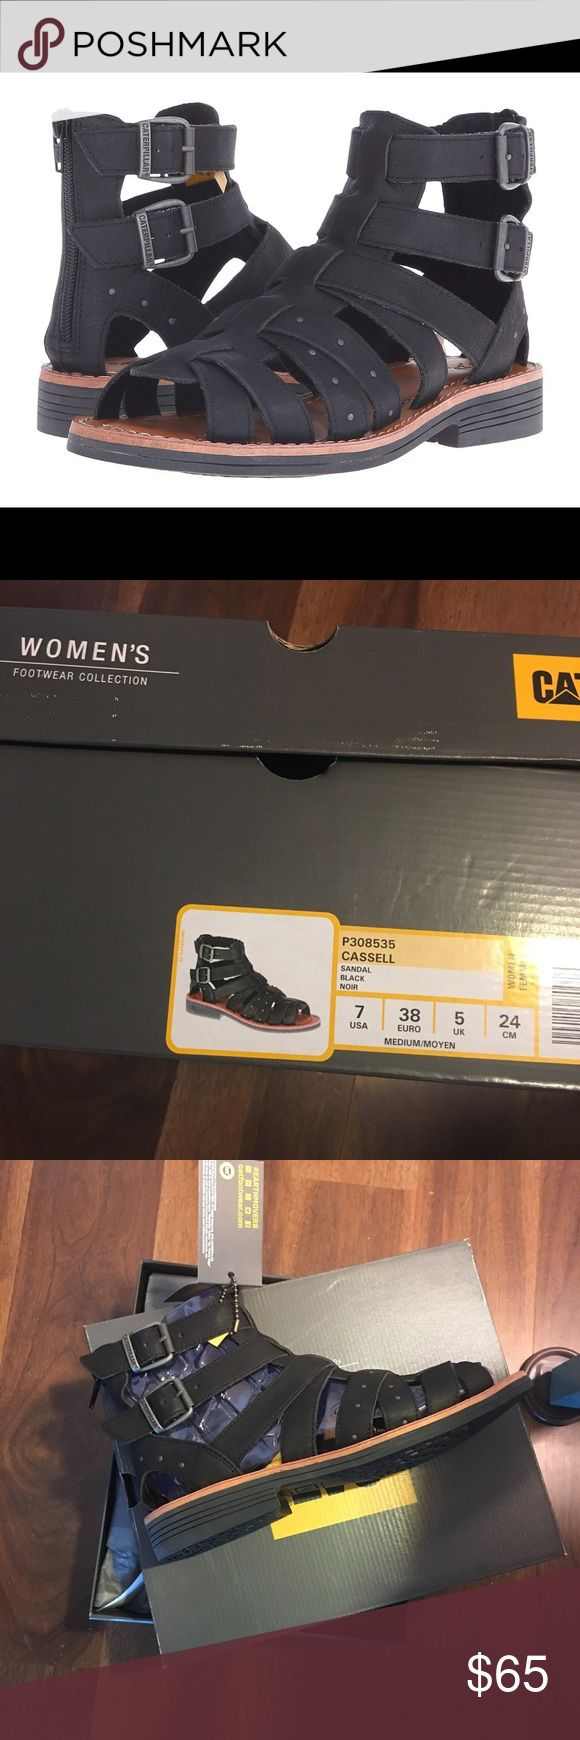 CAT FOOTWEAR Cassell Gladiator Sandal Brand New  7 CAT FOOTWEAR Cassell Gladiator Sandal Brand New Sz 7  Every day will feel like summer vacation when you're wearing the incredible style and comfort of the Caterpillar Casual® Cassell sandal. Full grain leather upper with metal stud accents on straps. Metal buckle closure at ankle for easy adjustability. Back zip closure for easy on and off. Soft microfiber lining for added comfort. Cushioned PU footbed for both comfort and support. Durable…